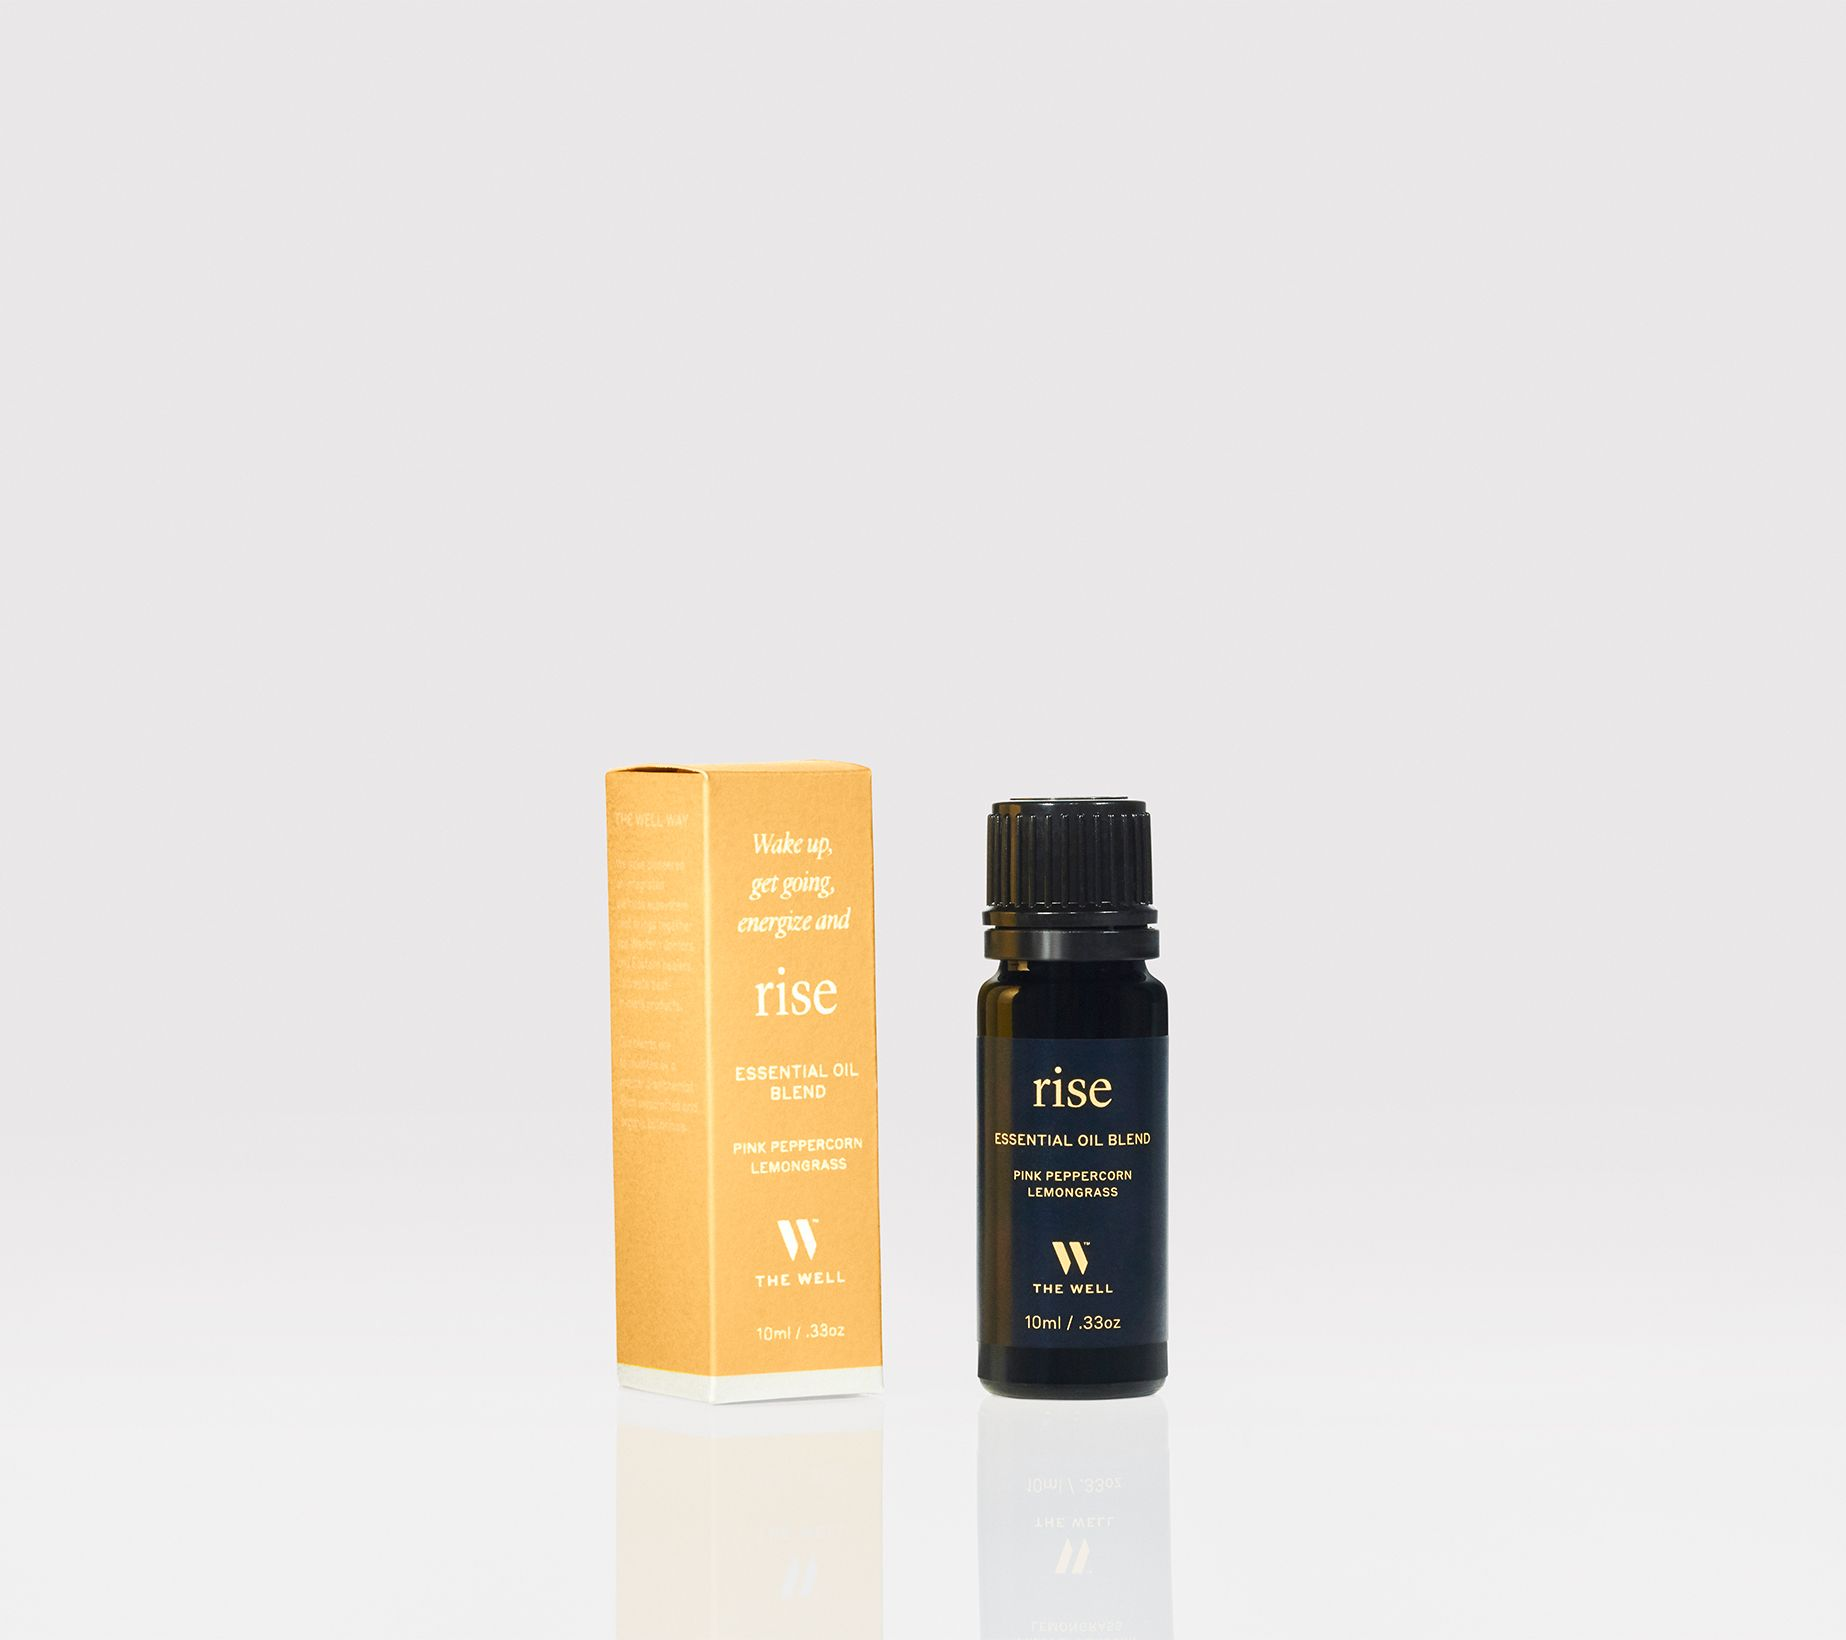 THE WELL Rise Essential Oil